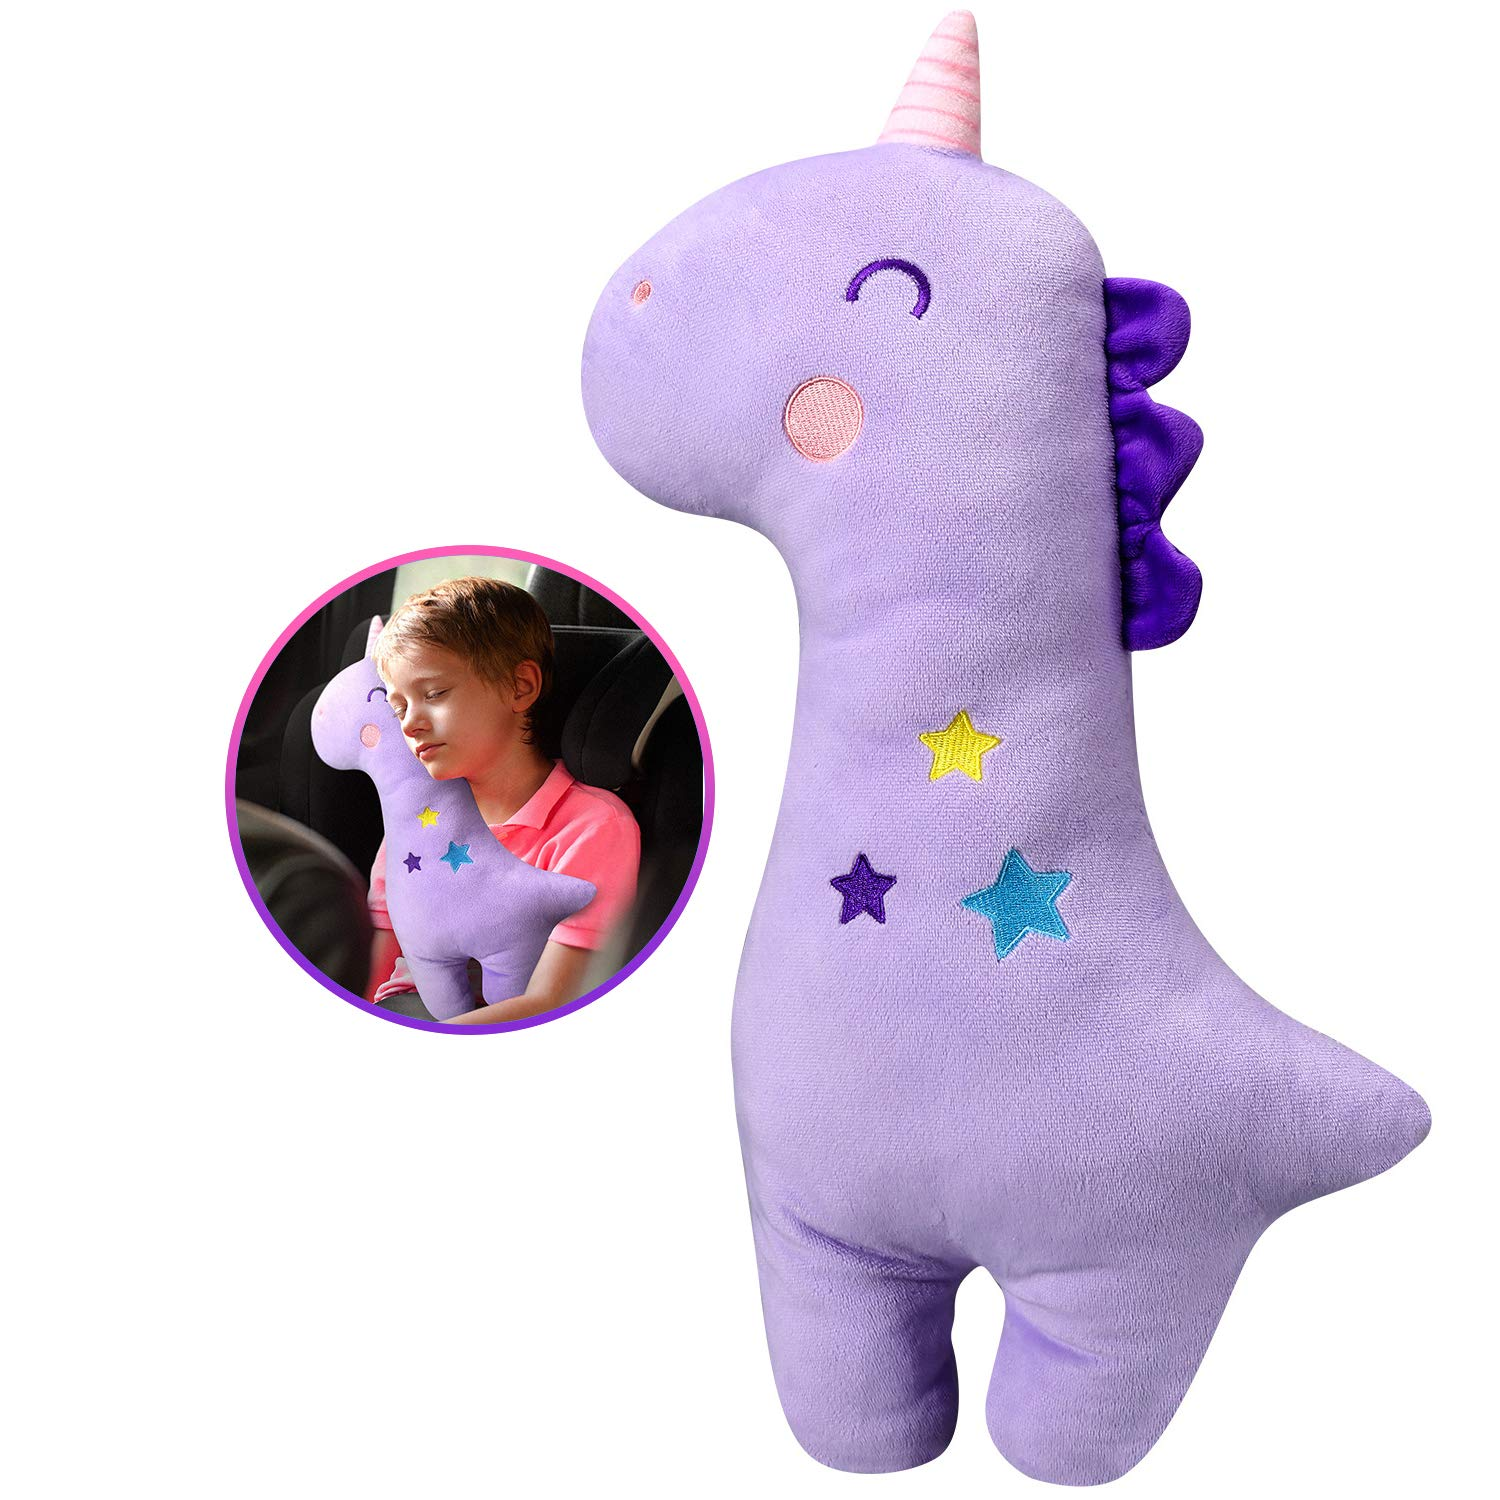 Car Seat Belt Pillow for Kids Dinosaur 2Pcs Unicorn Car Seat Belt Cover Pad Head and Neck Support